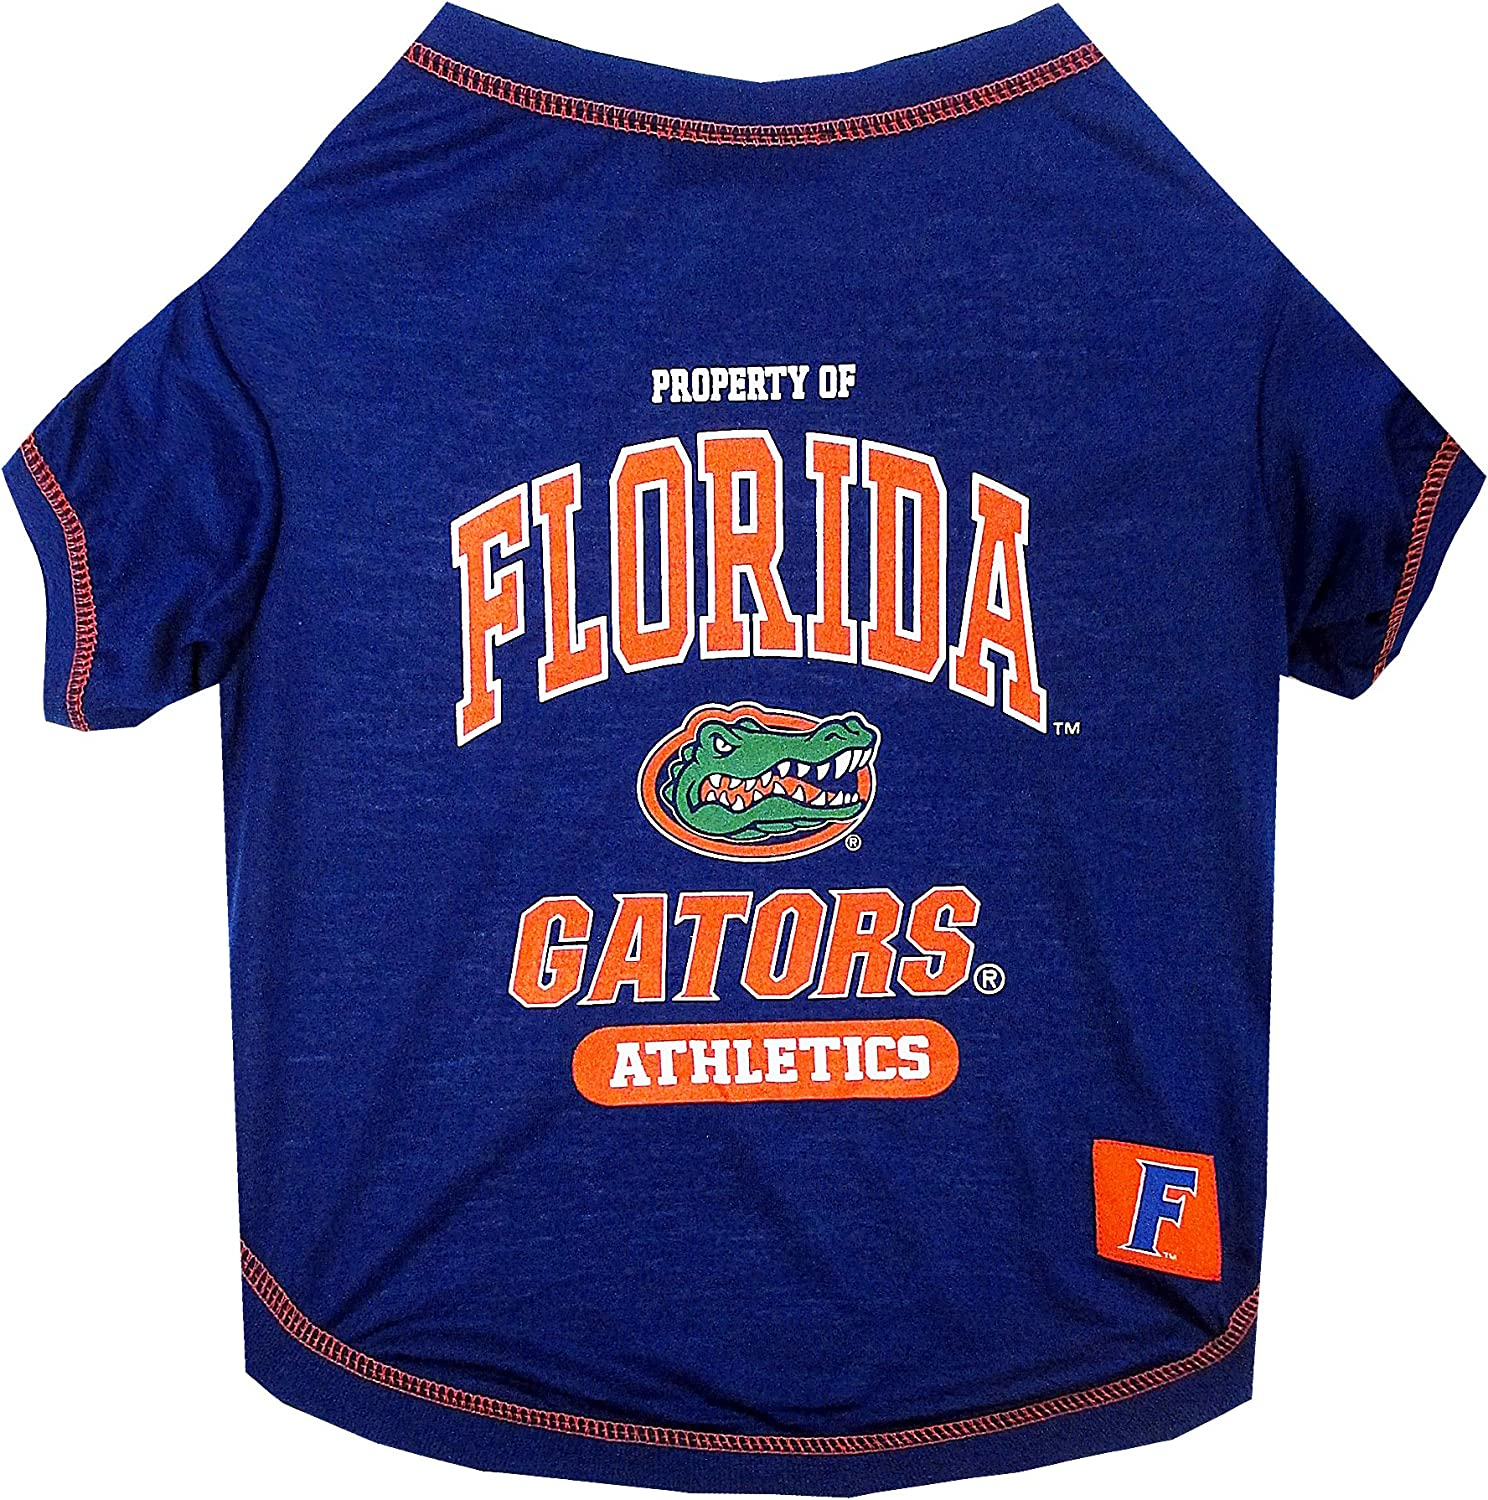 5 Sizes available in 50+ SCHOOL TEAMS COLLEGIATE DOG SHIRT COLLEGE PET OUTFIT NCAA T-SHIRT Football /& Basketball DOGS /& CATS SHIRT Durable SPORTS PET TEE DOG TEE SHIRT